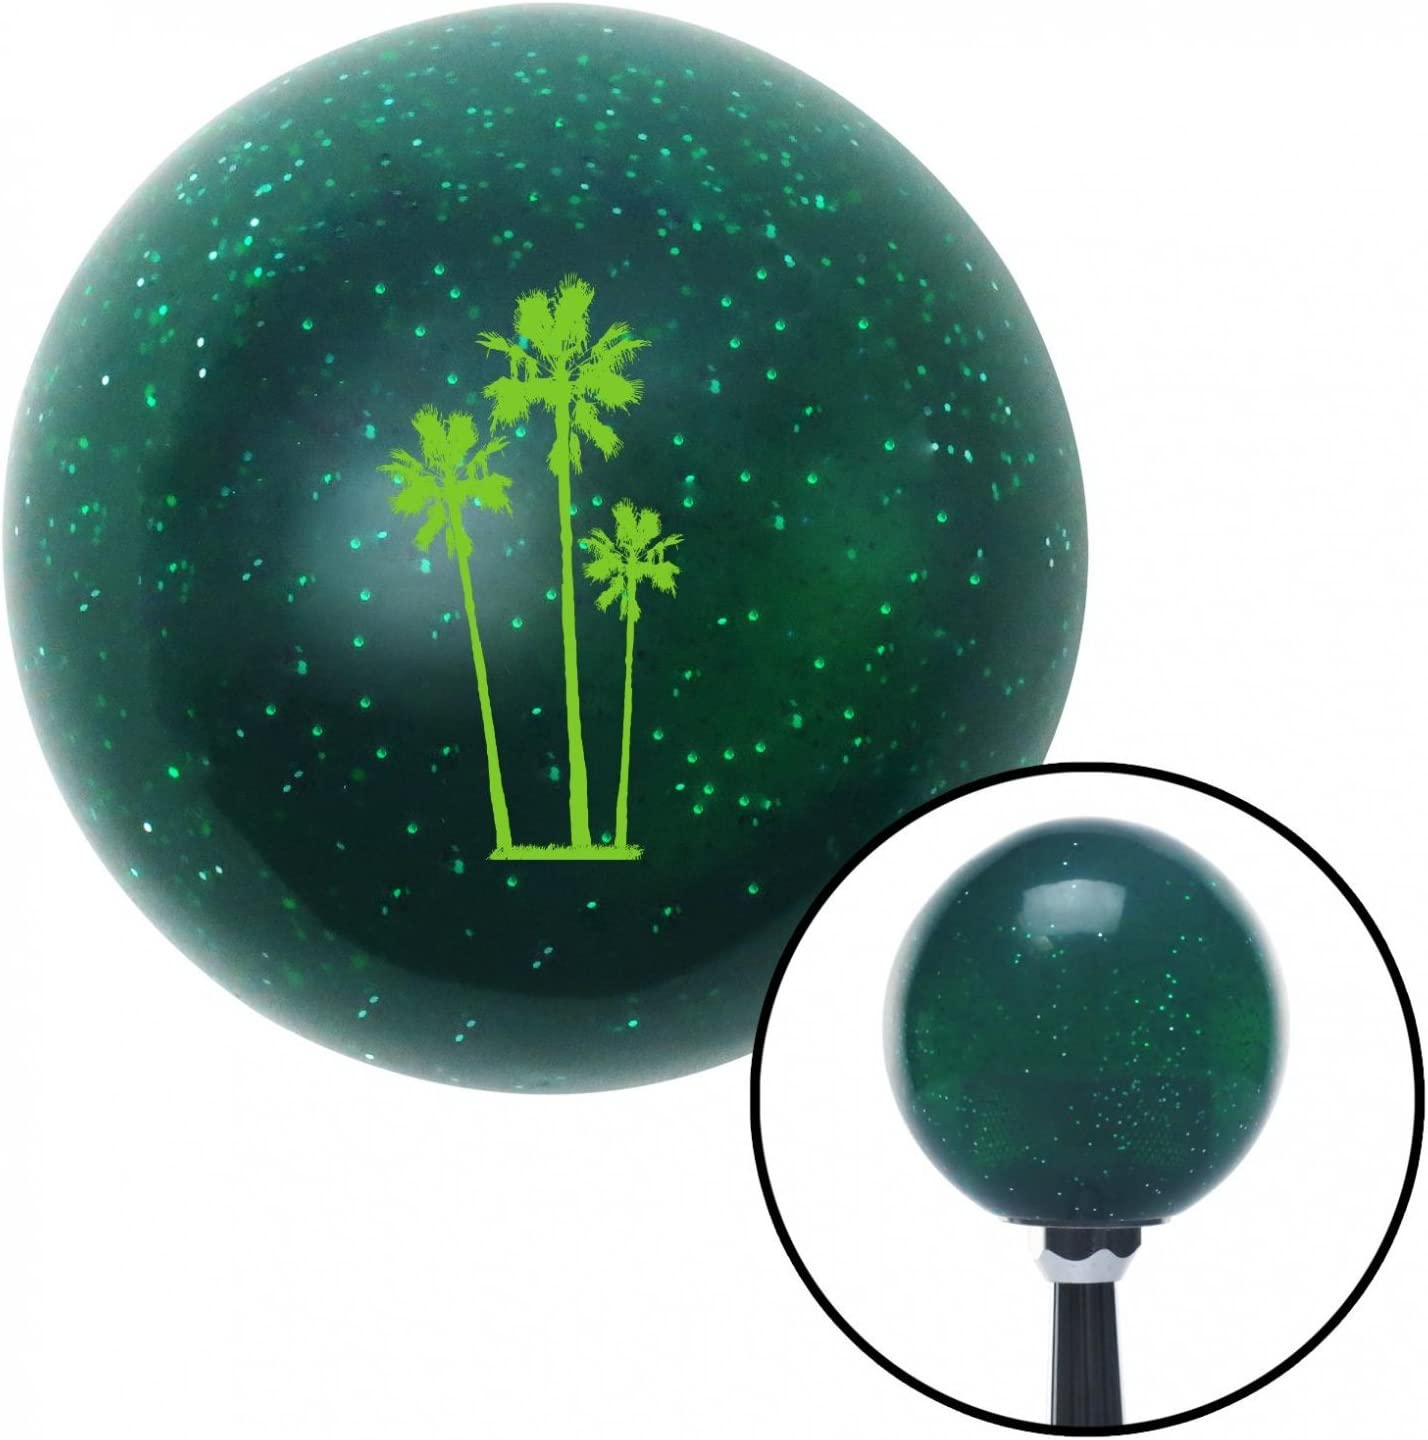 American Shifter 64101 Green Metal Flake Shift Knob with 16mm x 1.5 Insert Green Group of Palms